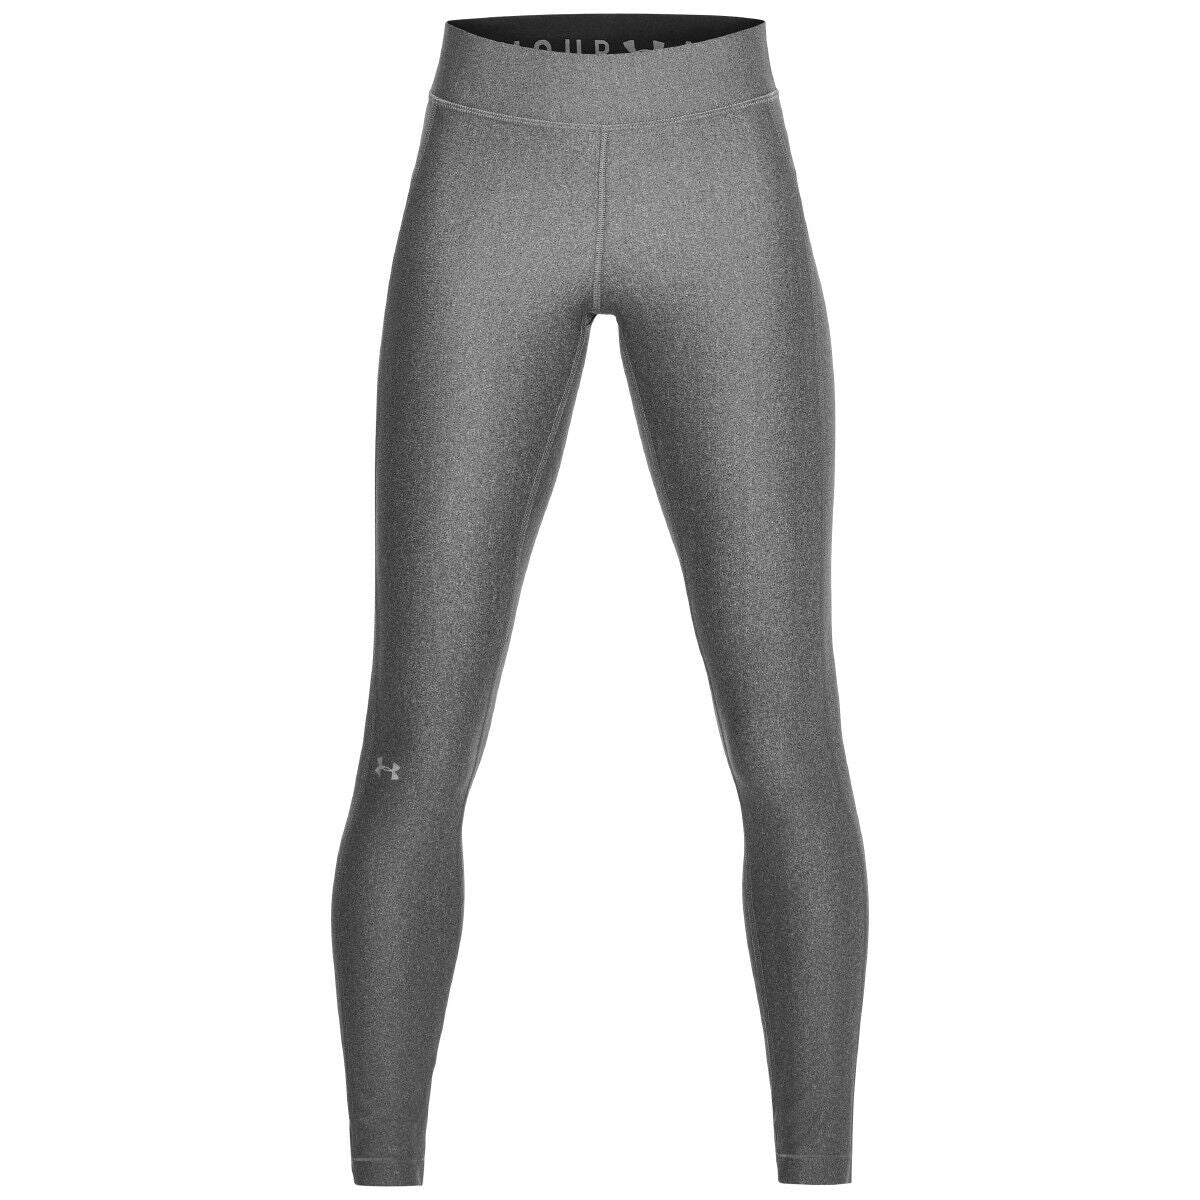 Under Armour Women's HeatGear Leggings - Valley Sports UK